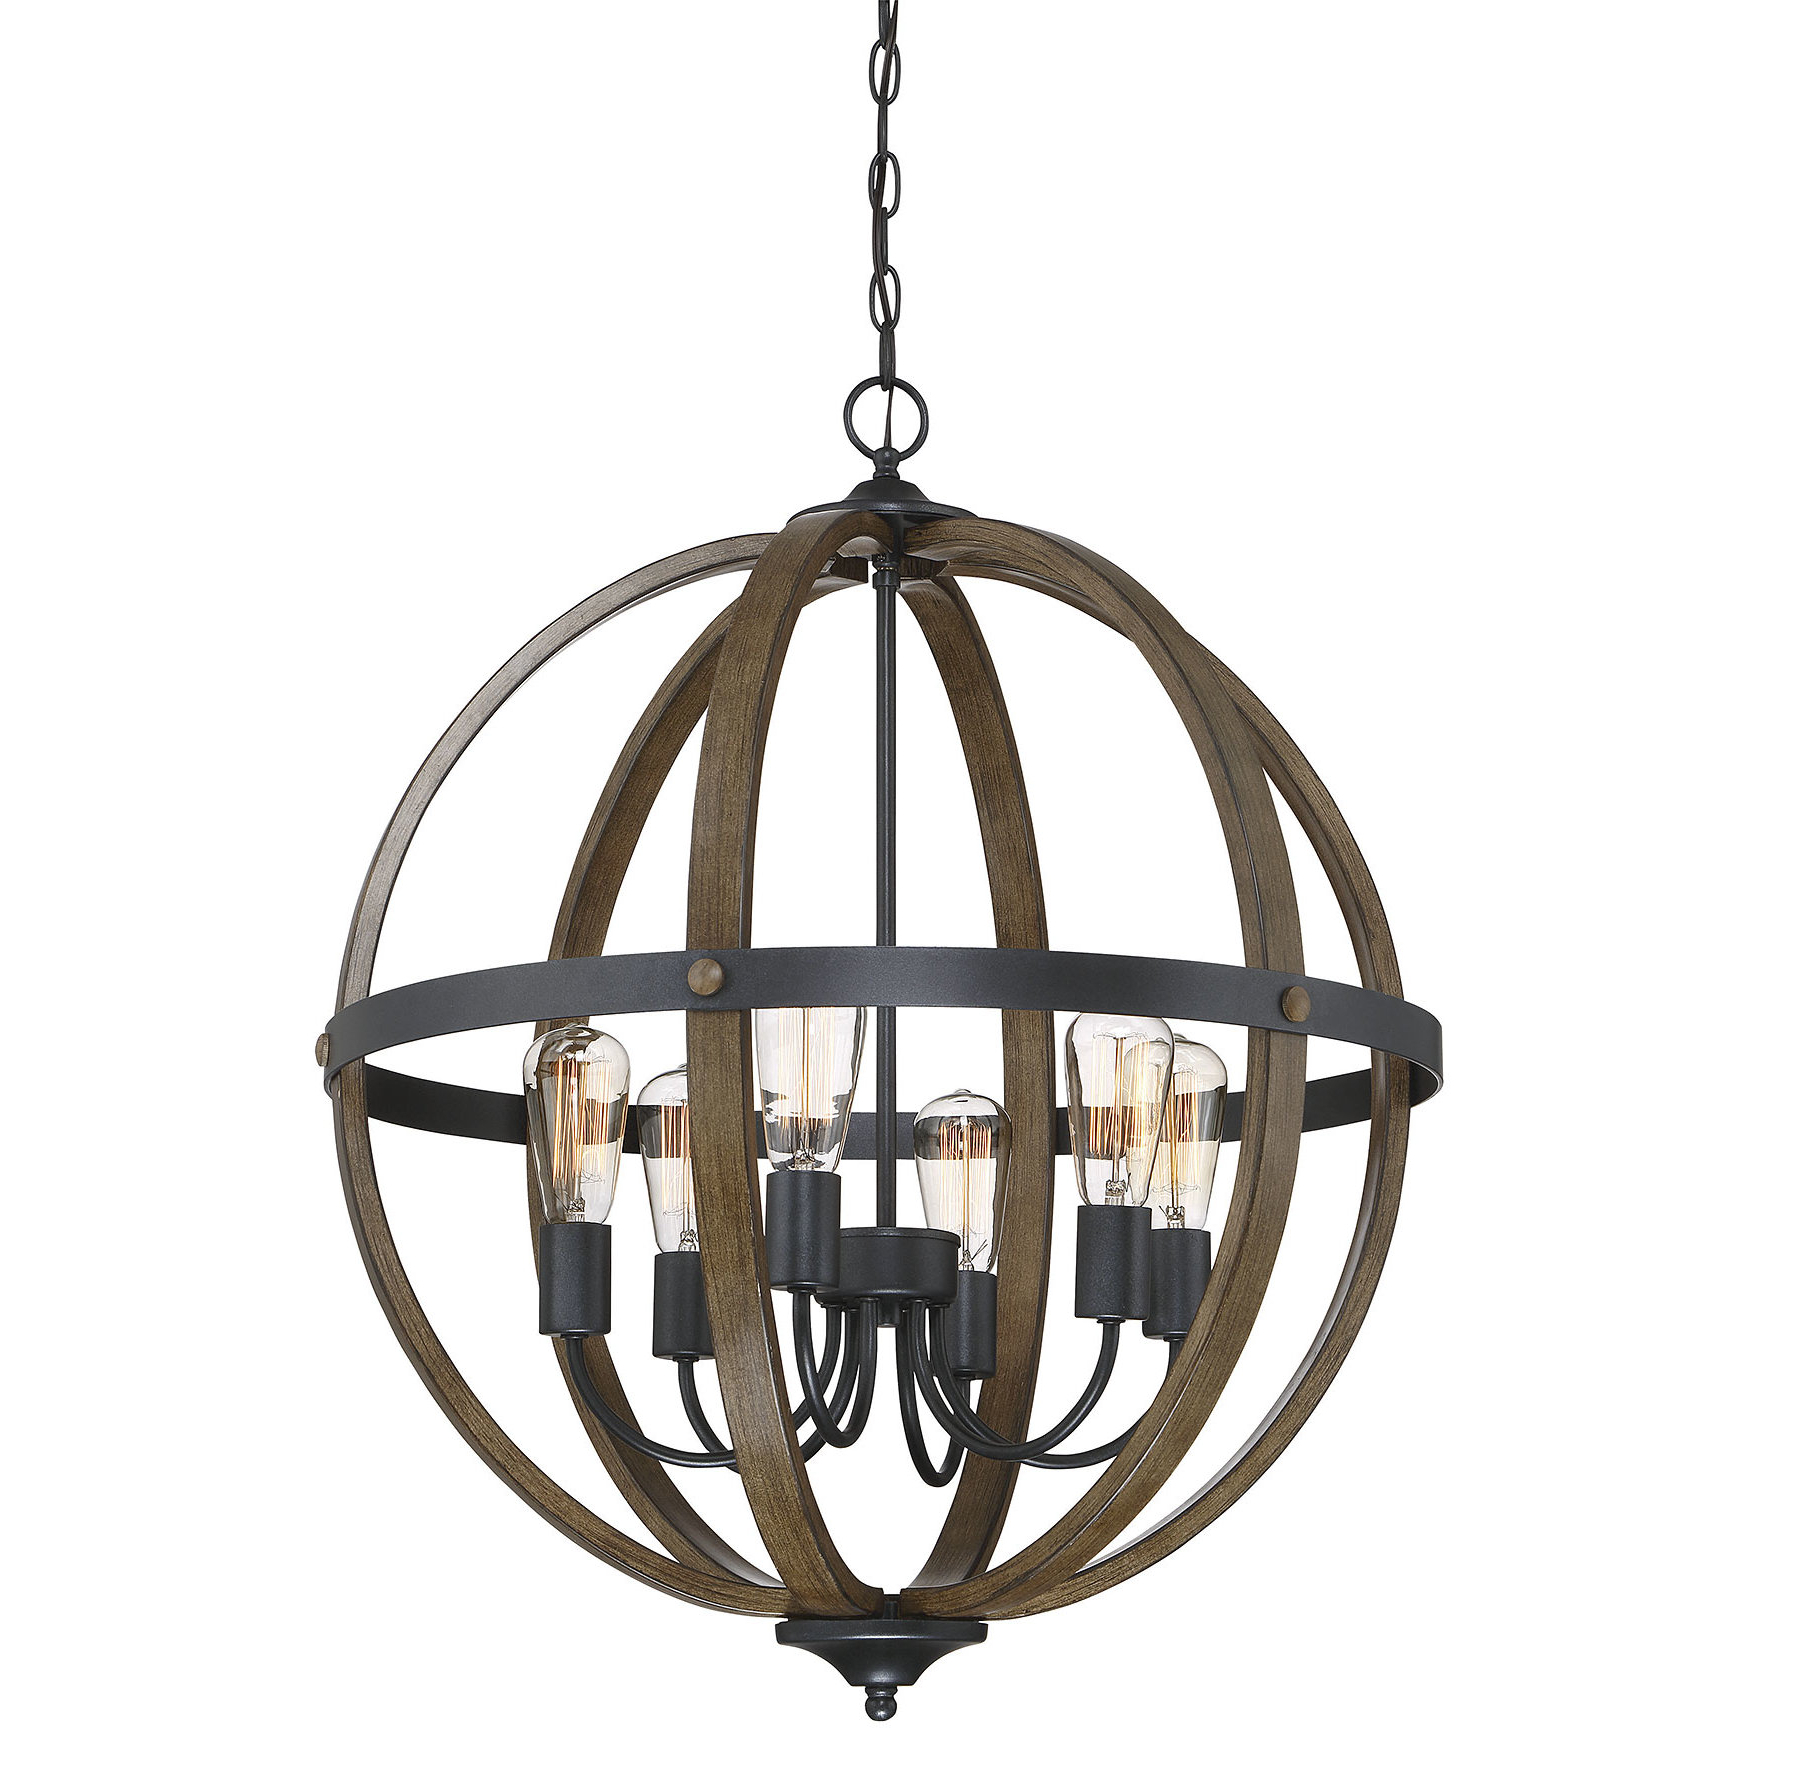 Hendry 4 Light Globe Chandeliers Within Famous Farmhouse & Rustic Globe Chandeliers (Gallery 14 of 25)